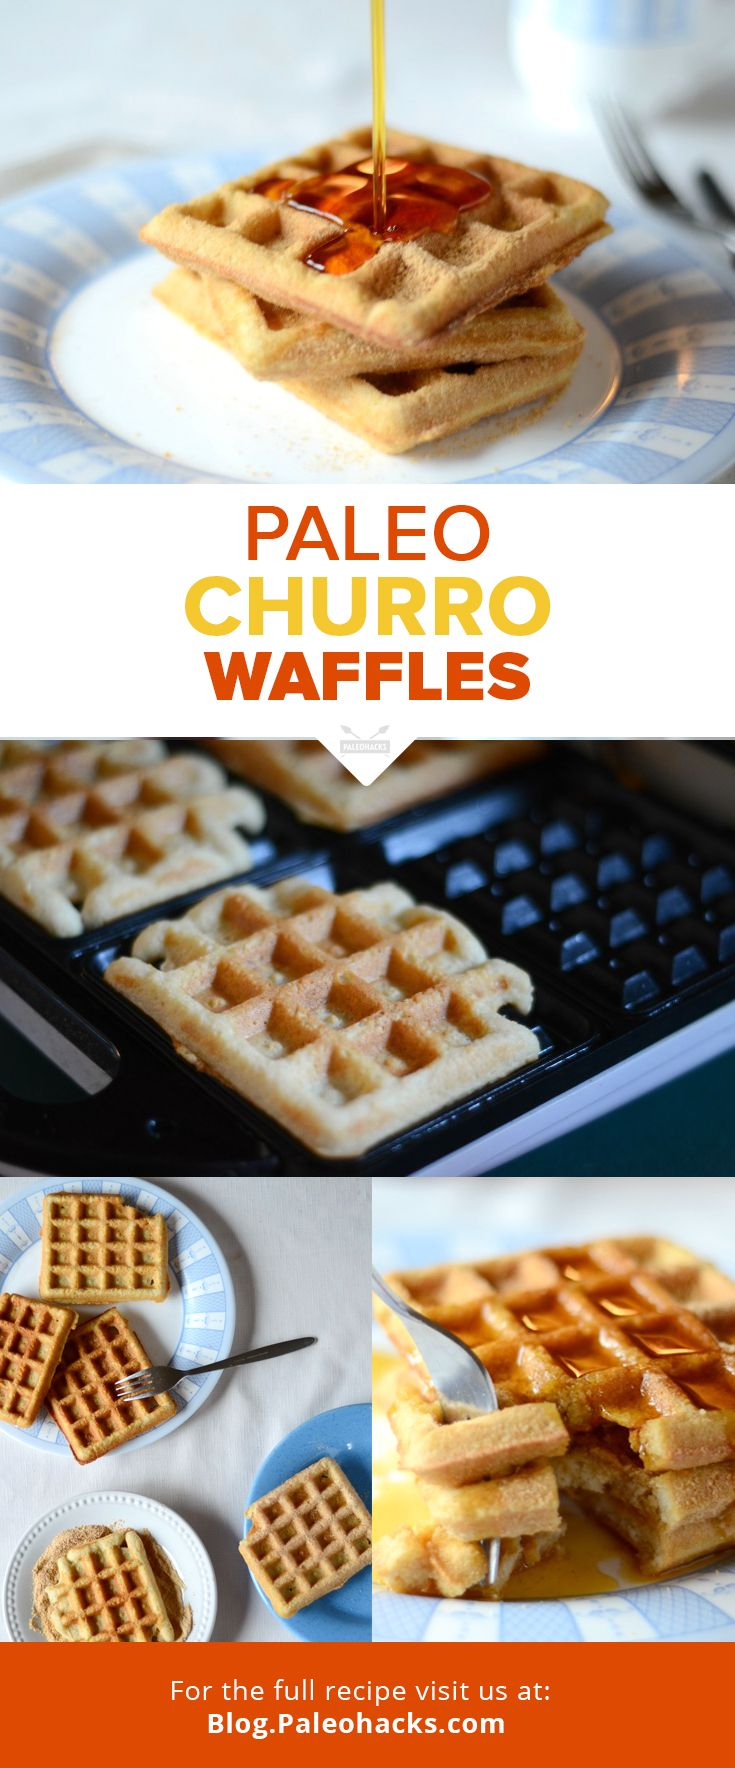 Indulge your sweet tooth with these crispy almond flour waffles dusted in cinnamon sugar!